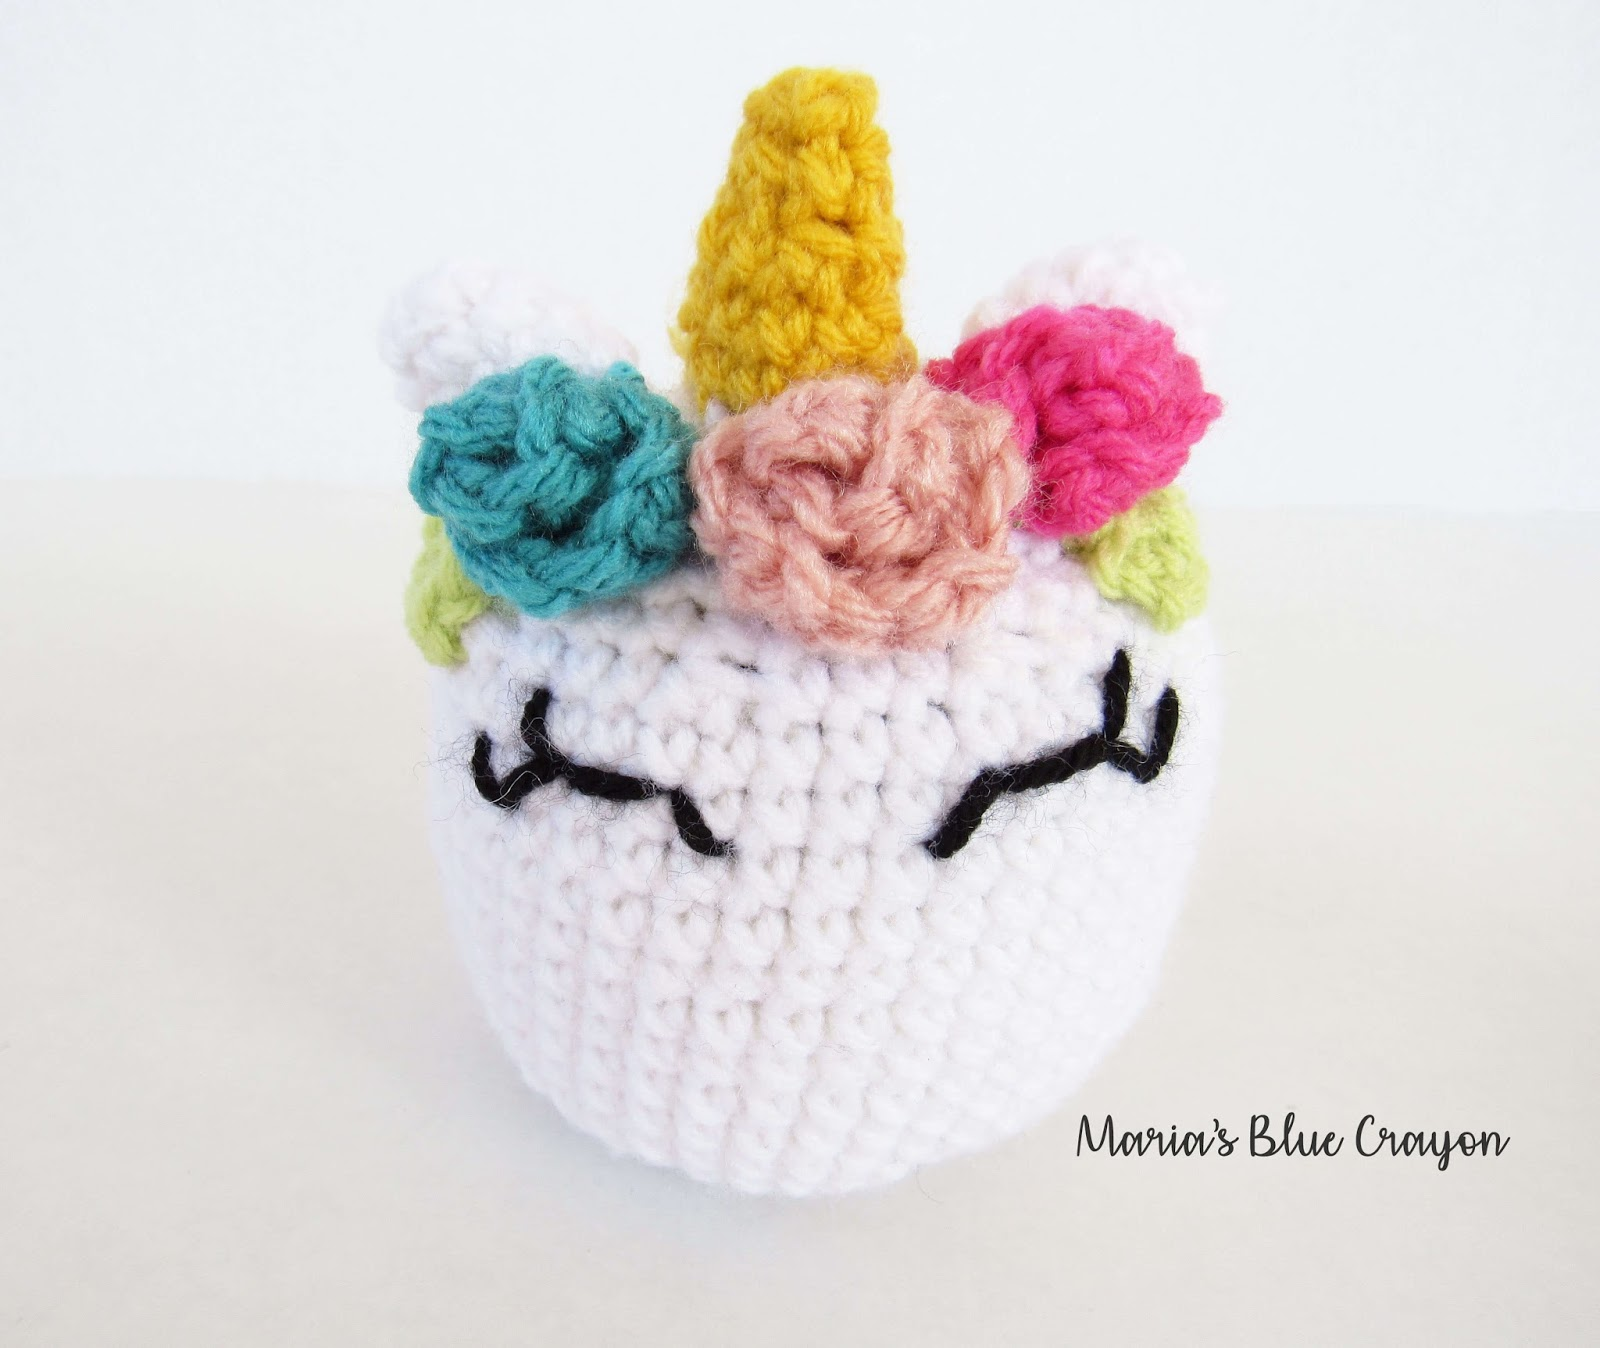 Crochet Easter Basket Stuffed Toys Free Patterns Marias It With Flowers S Found A Few Once I Made The Unicorn Looked Around On Pinterest And Saw That Fellow Blogger Pretty Darn Similar One Didnt Write Up Another Pattern For